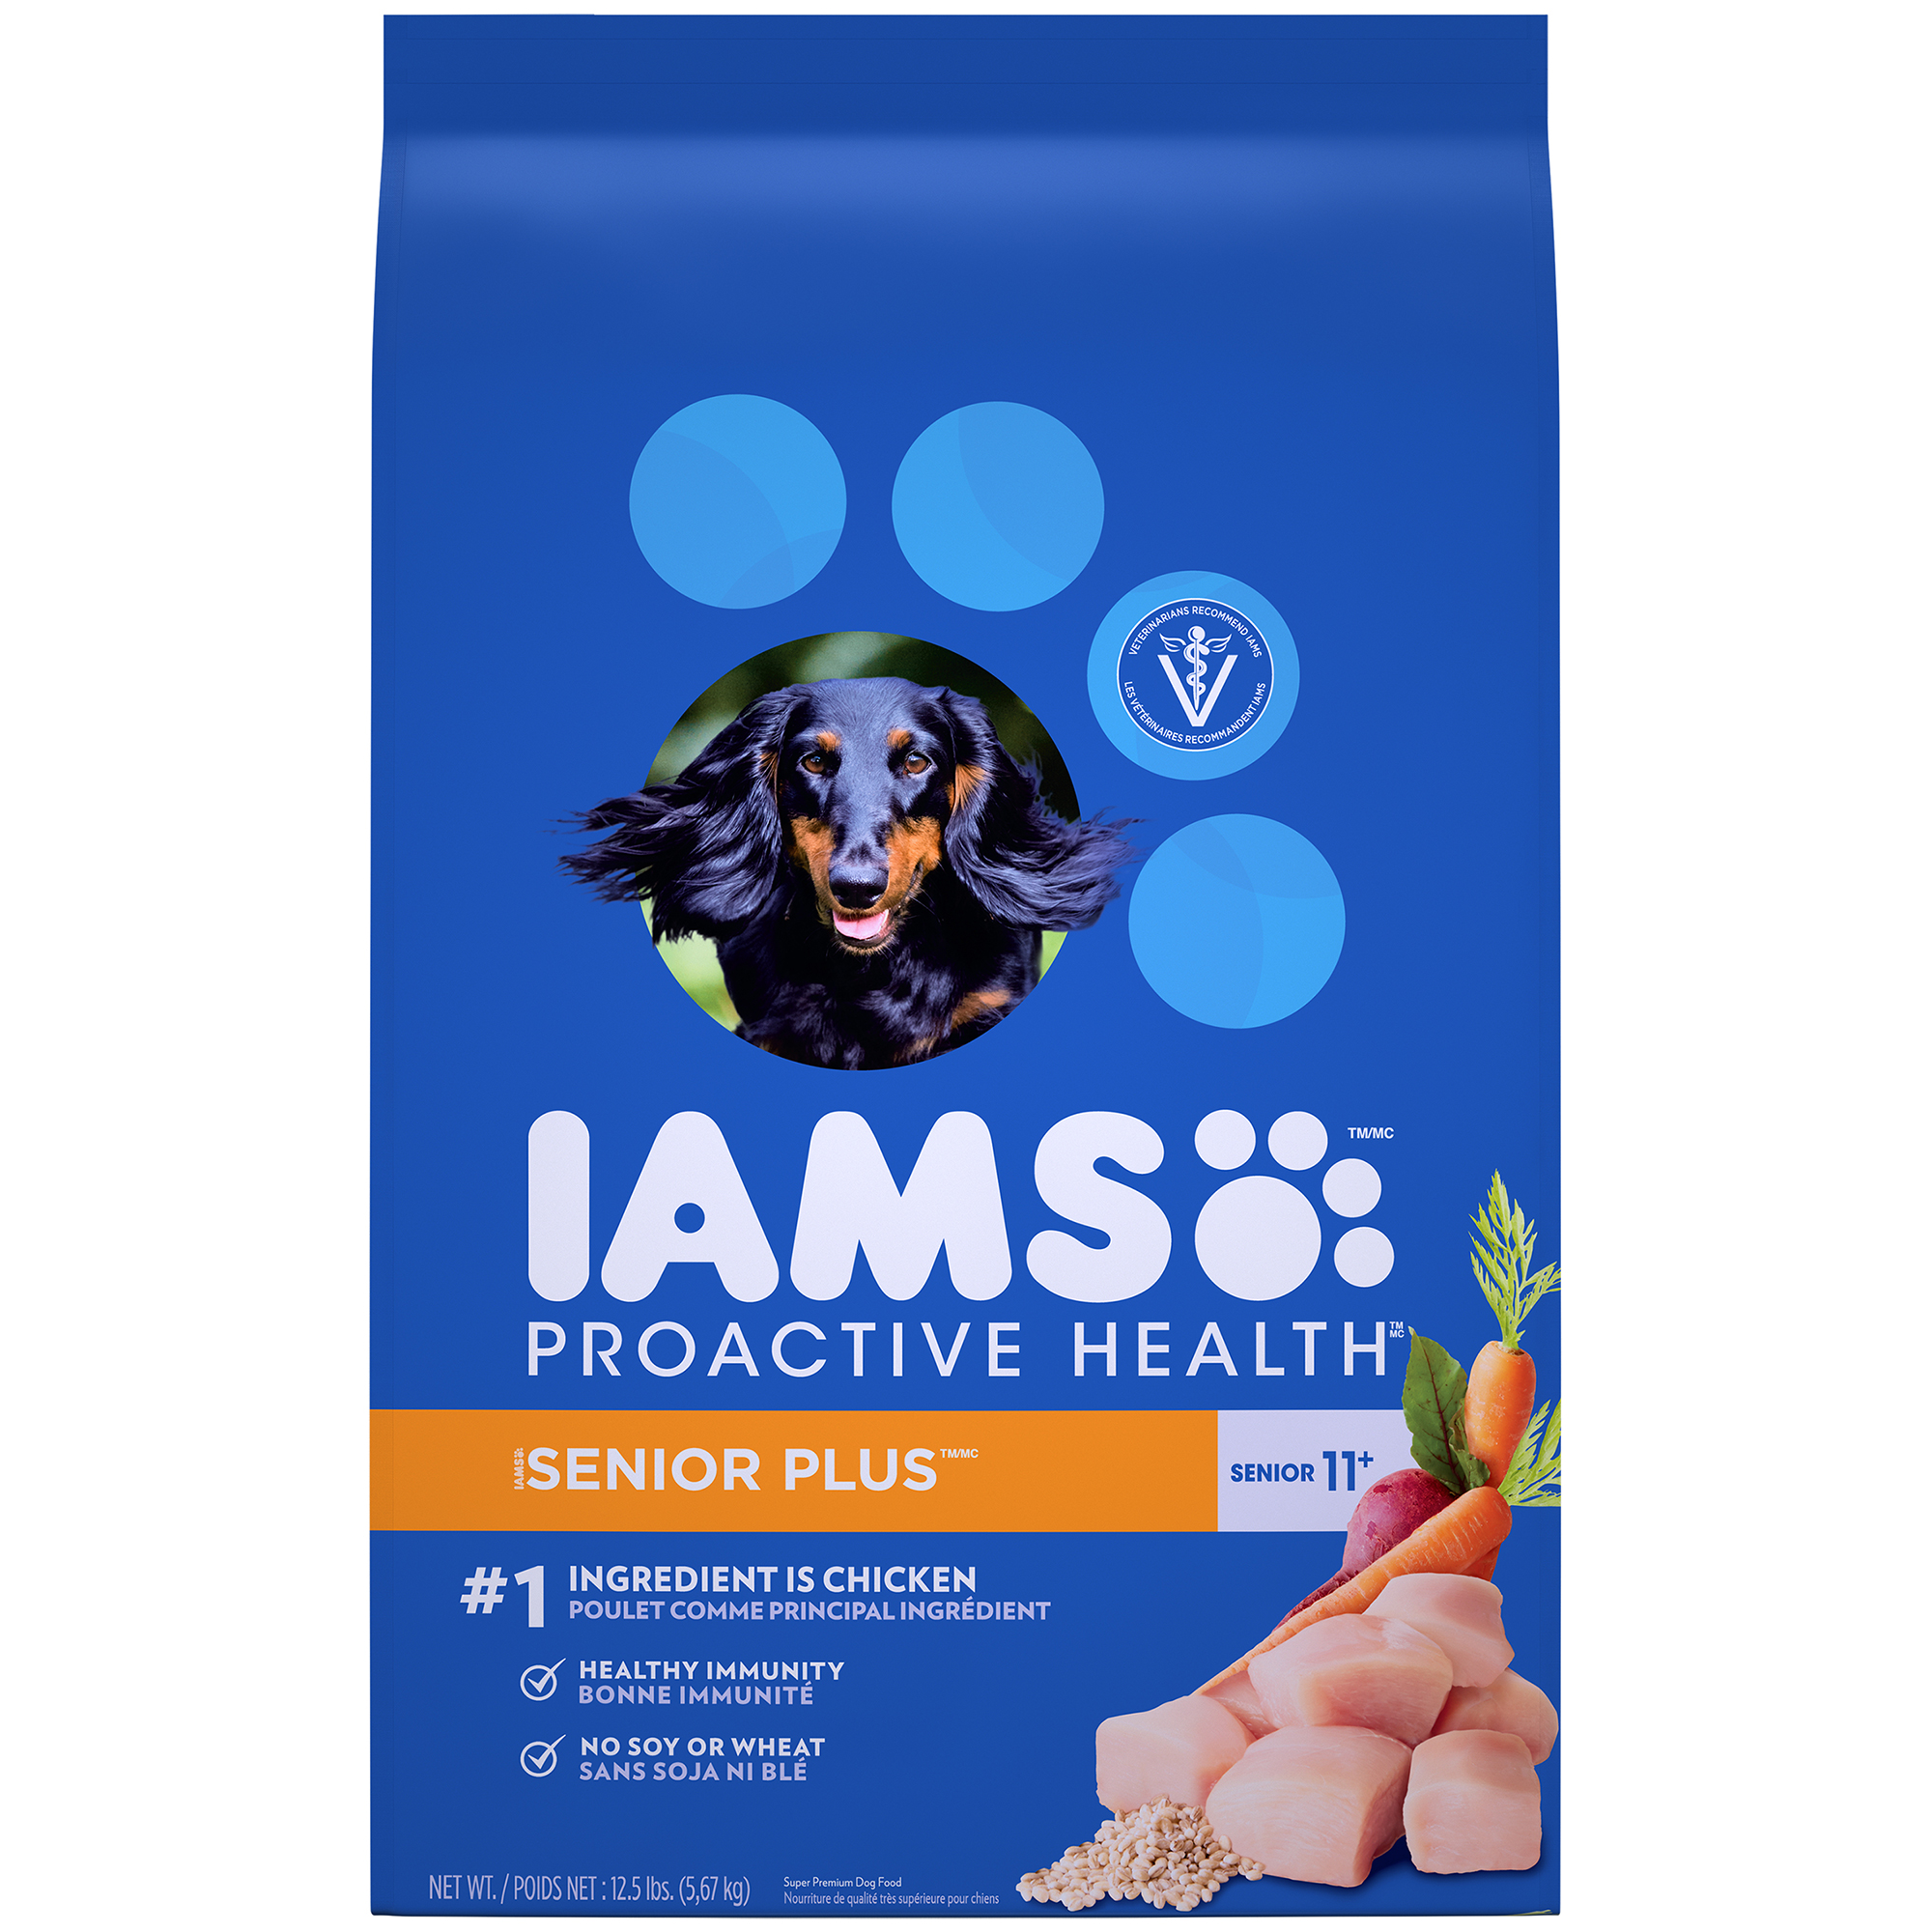 IAMS PROACTIVE HEALTH Senior Plus Dry Dog Food 12.5 Pounds